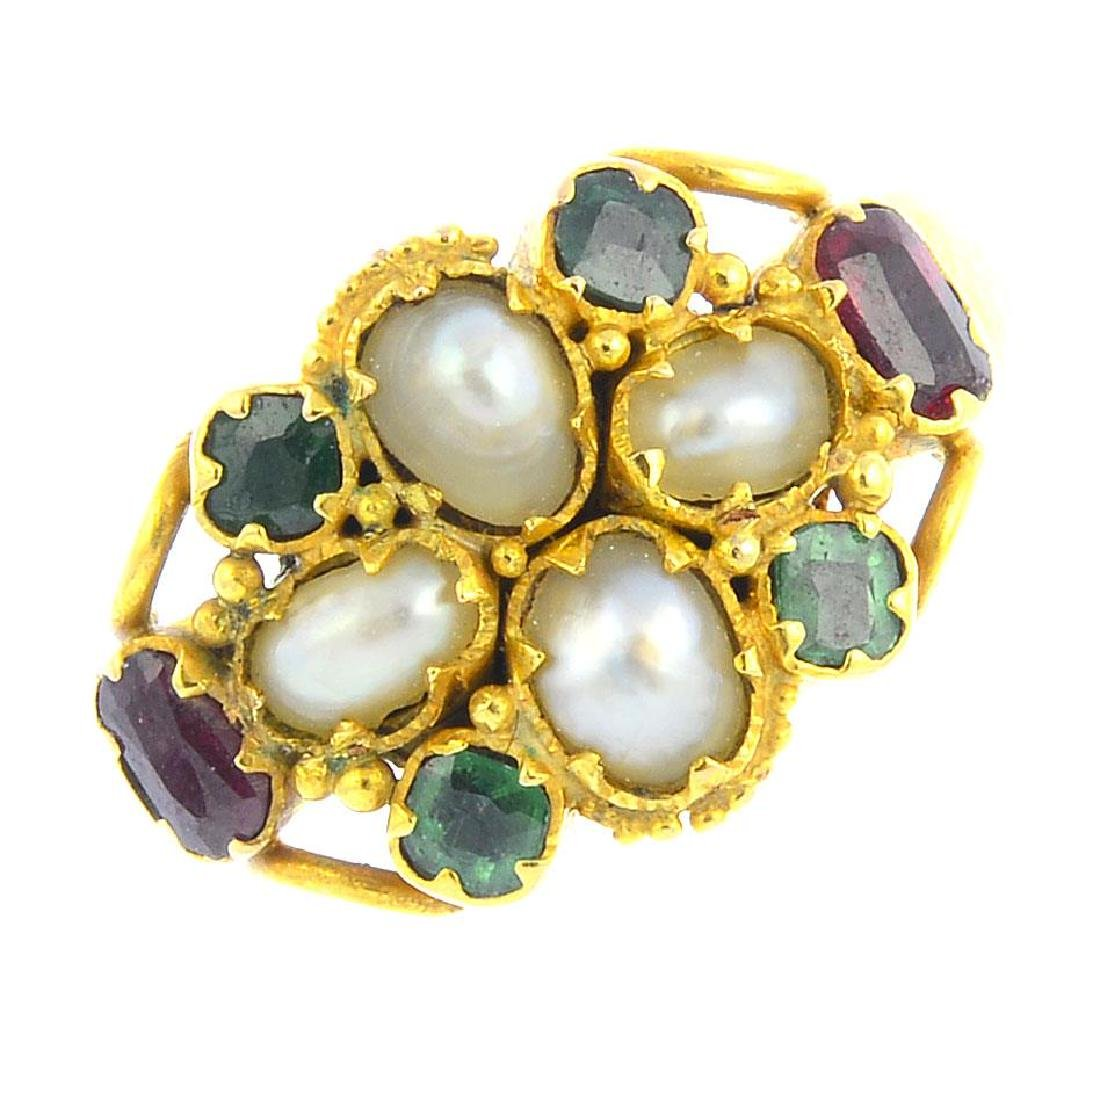 A mid Victorian 15ct gold, split pearl and paste ring.